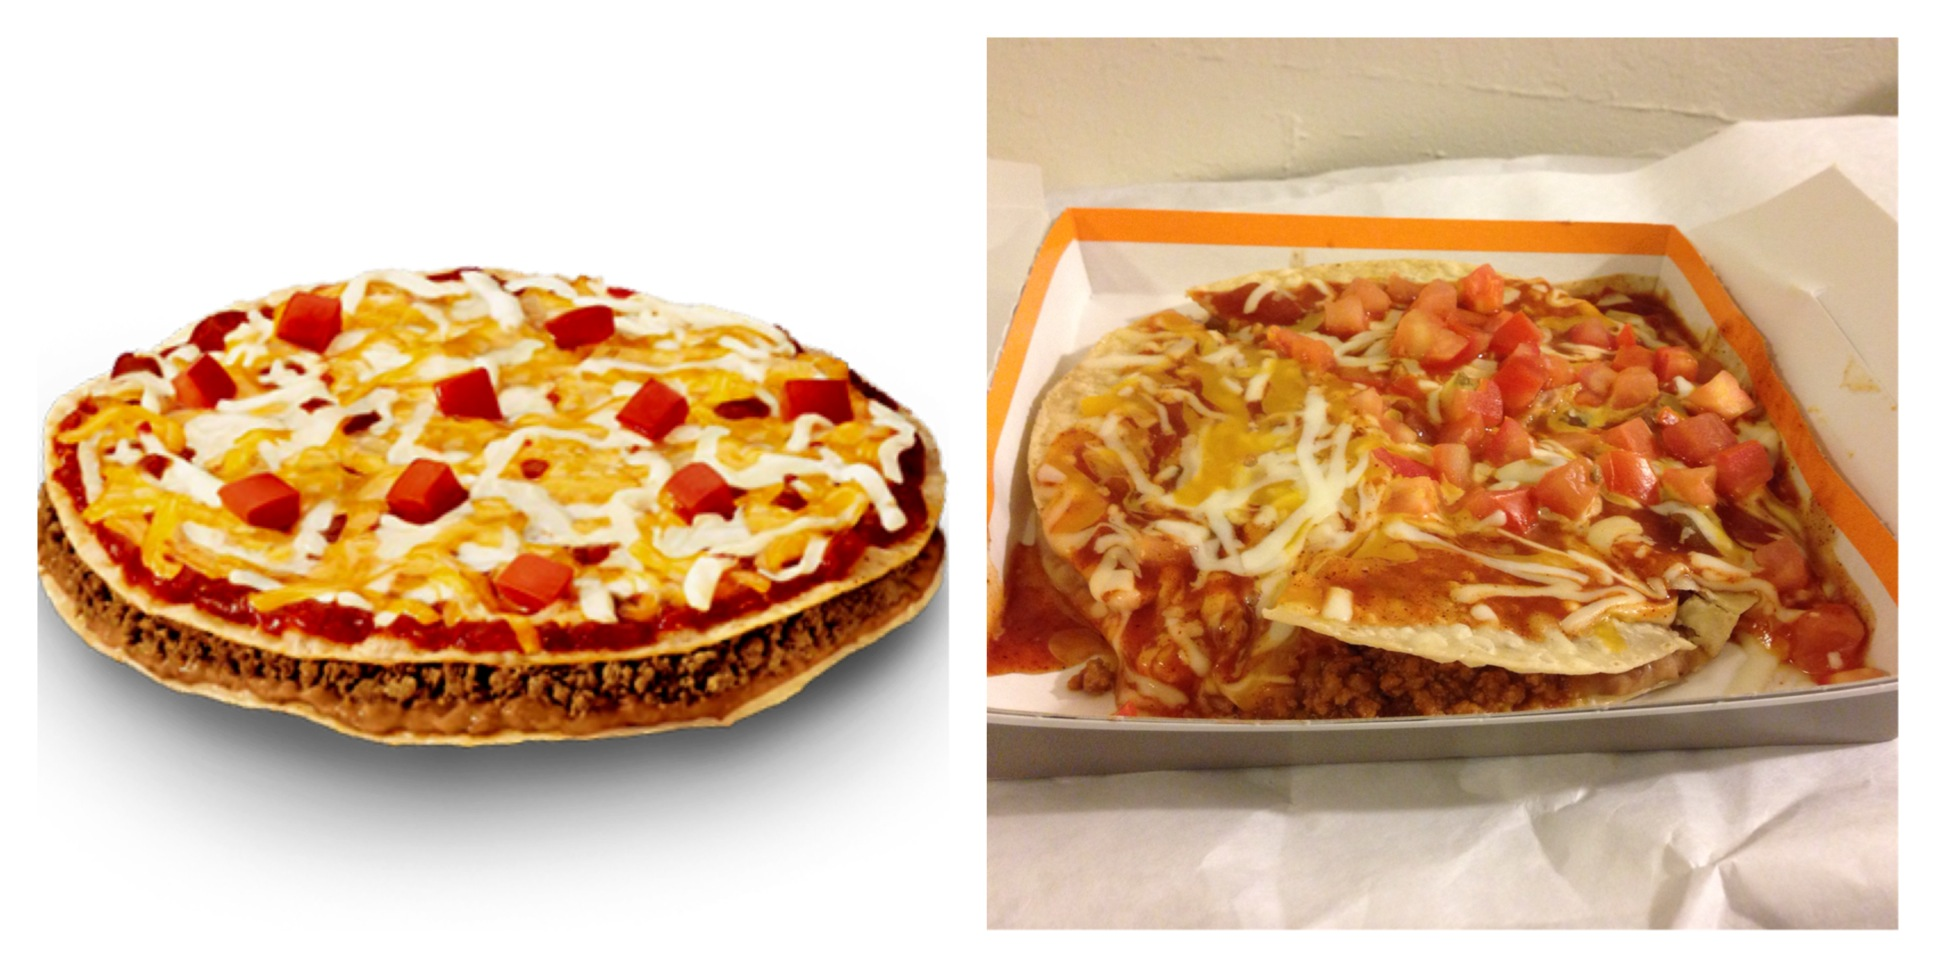 The Mexican Pizza from Taco Bell |